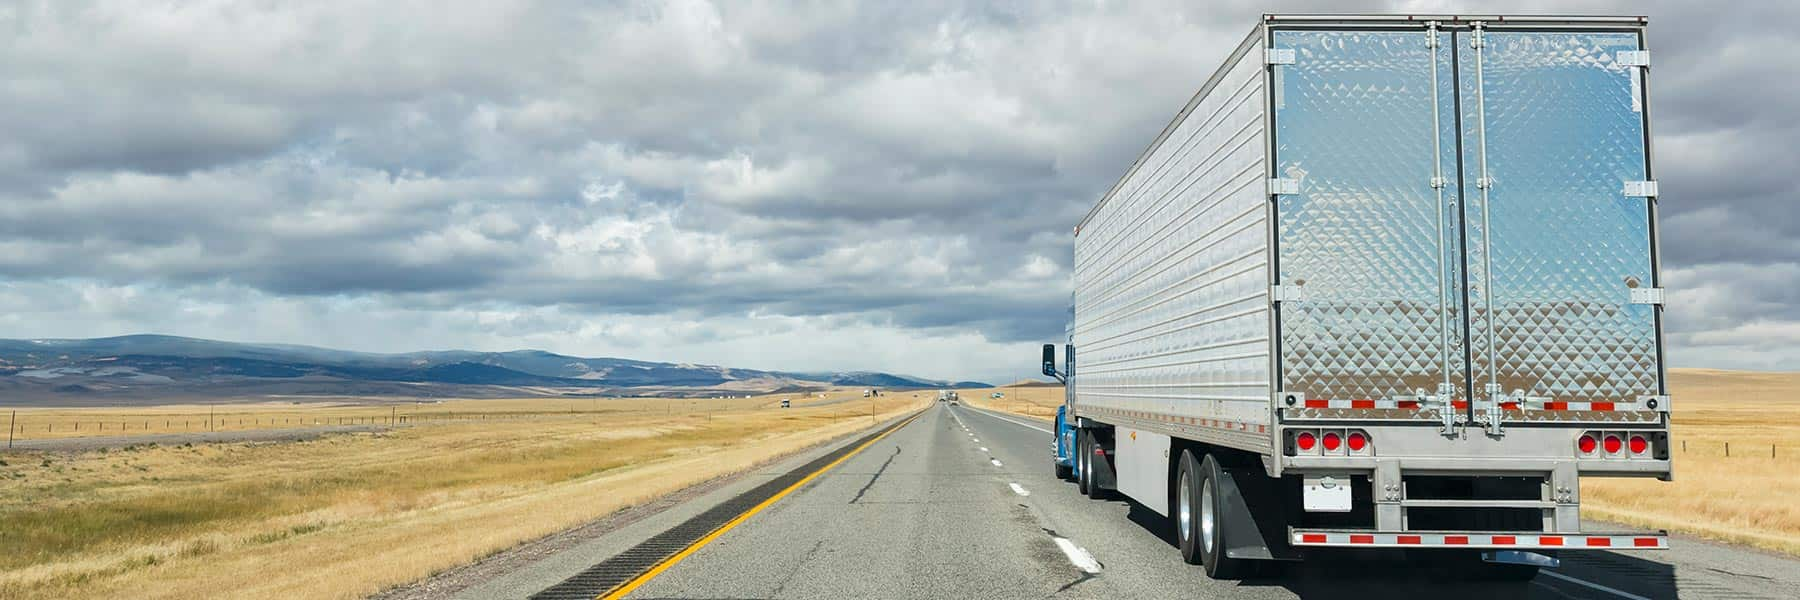 A shiny silver tractor trailer drives on an empty road into the distance toward the mountains under partly cloudy blue skies.